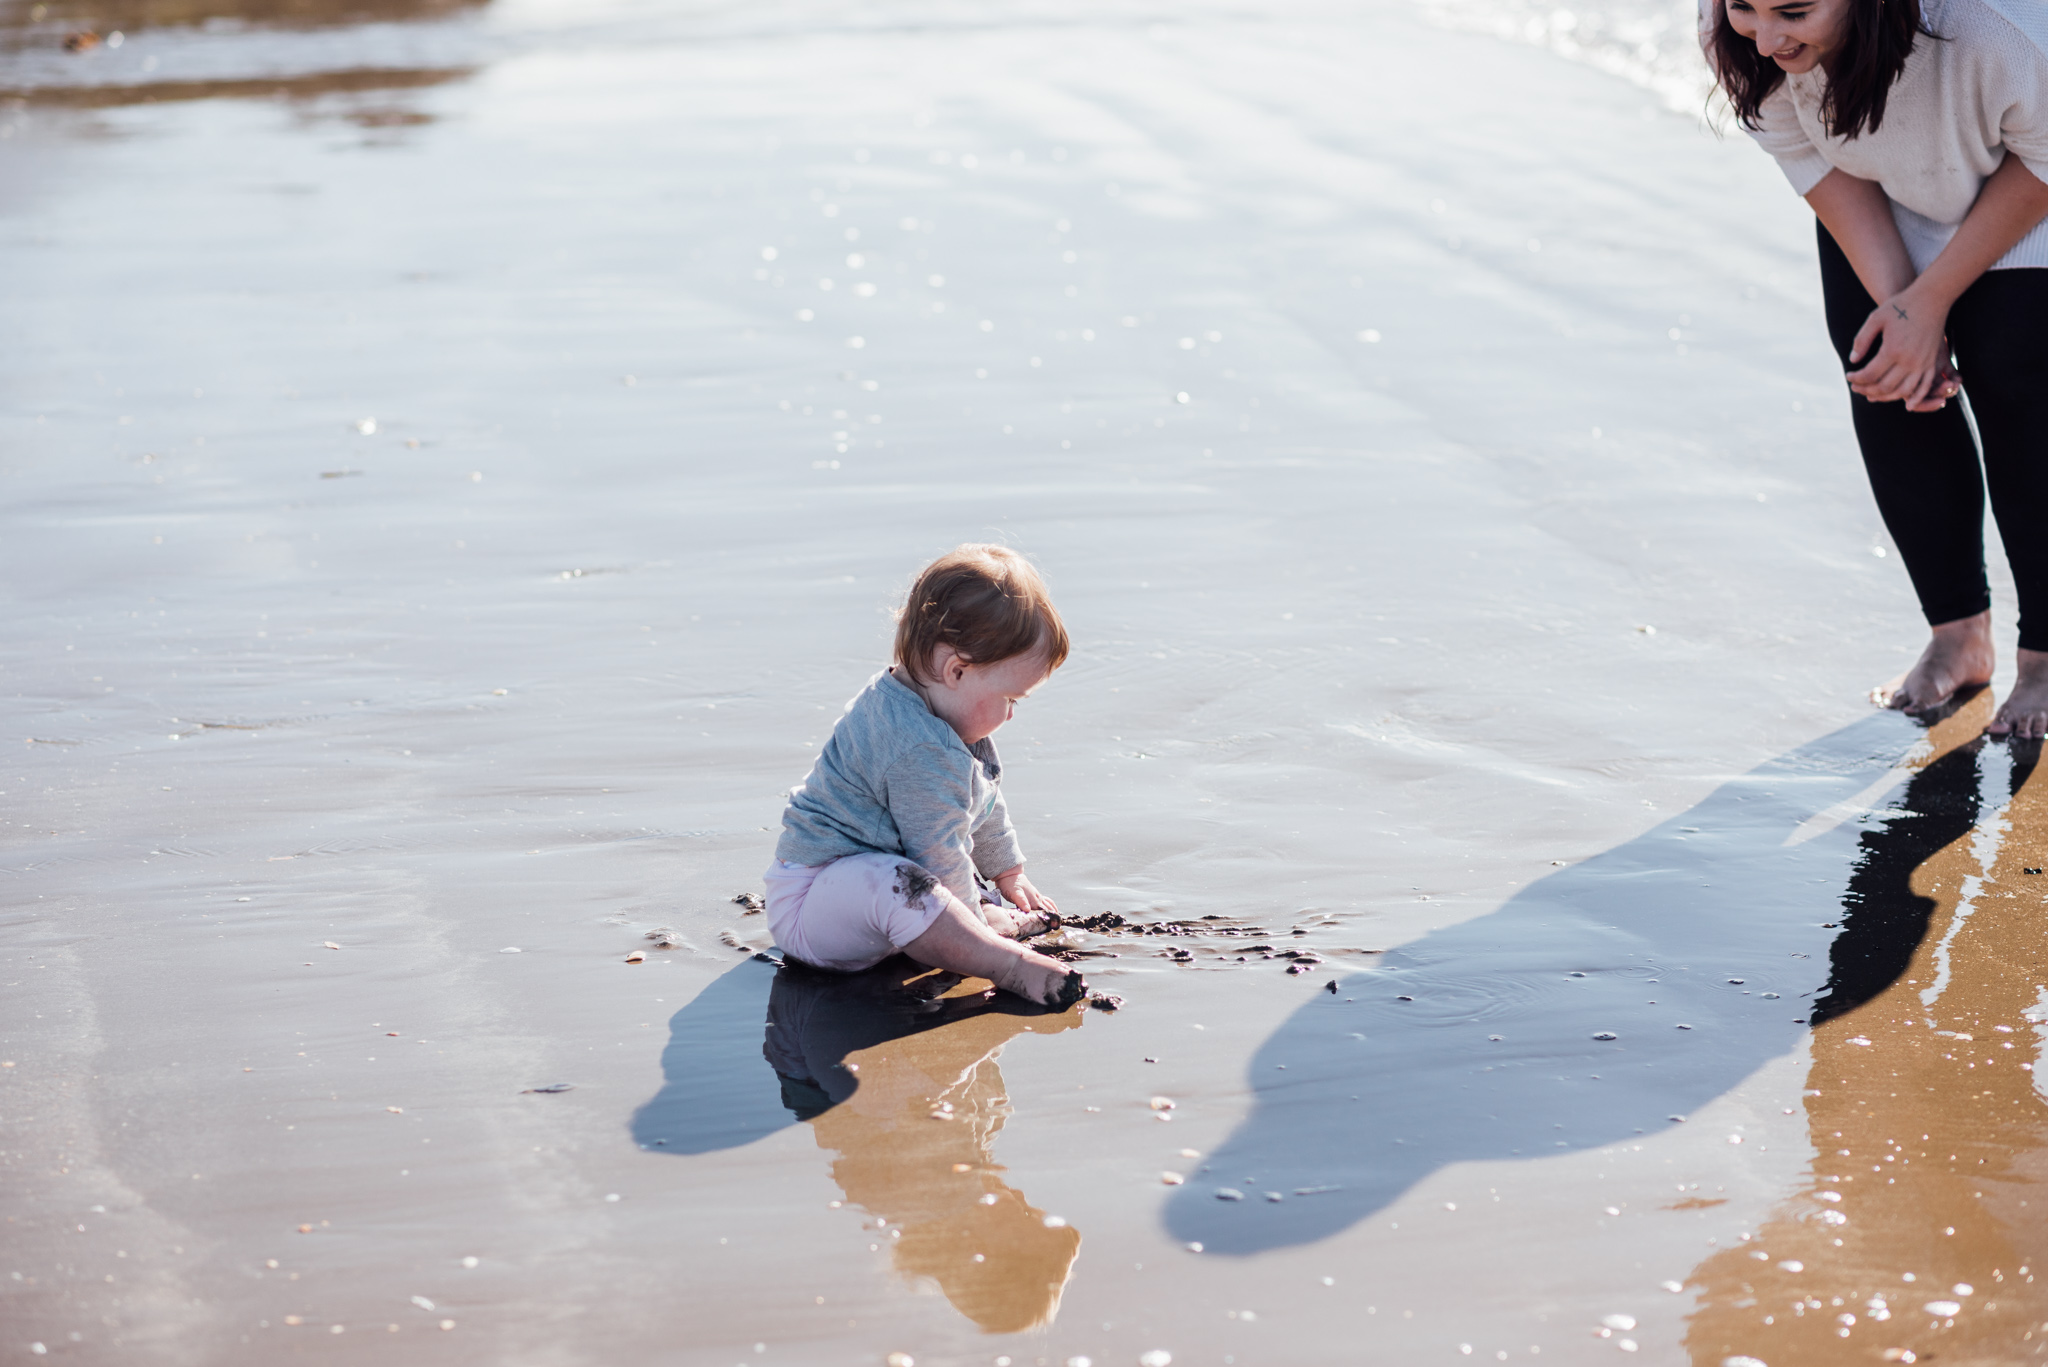 Family lifestyle - Celebrate those fleeting moments of childhood.45 minutes50+ hi res images on a beautiful USB$400